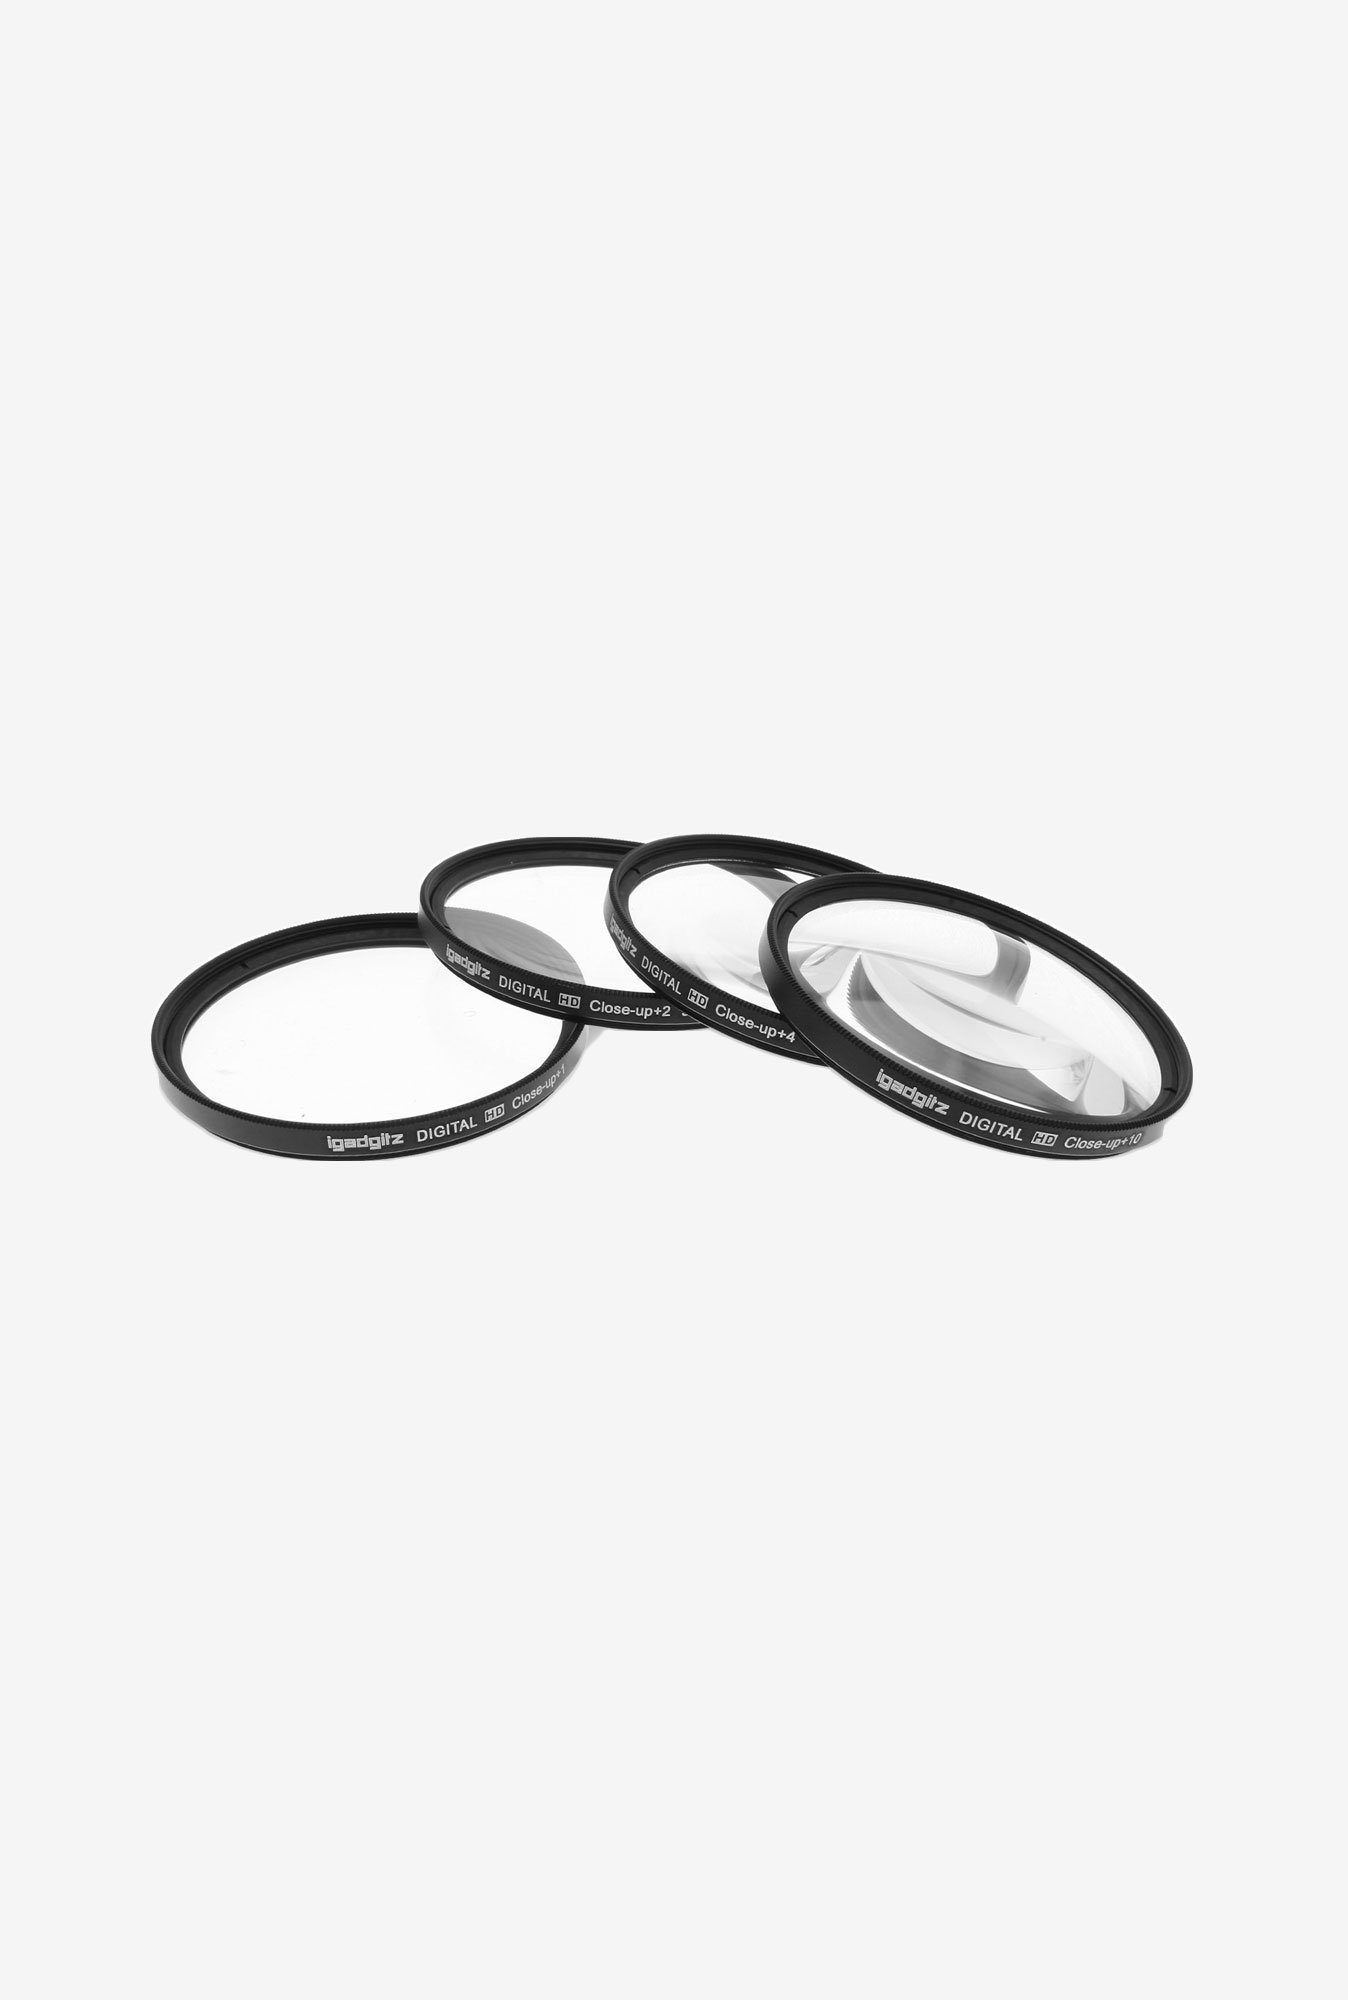 iGadgitz Xtra 77mm Zoom Magnifying Lens Filters (Black)